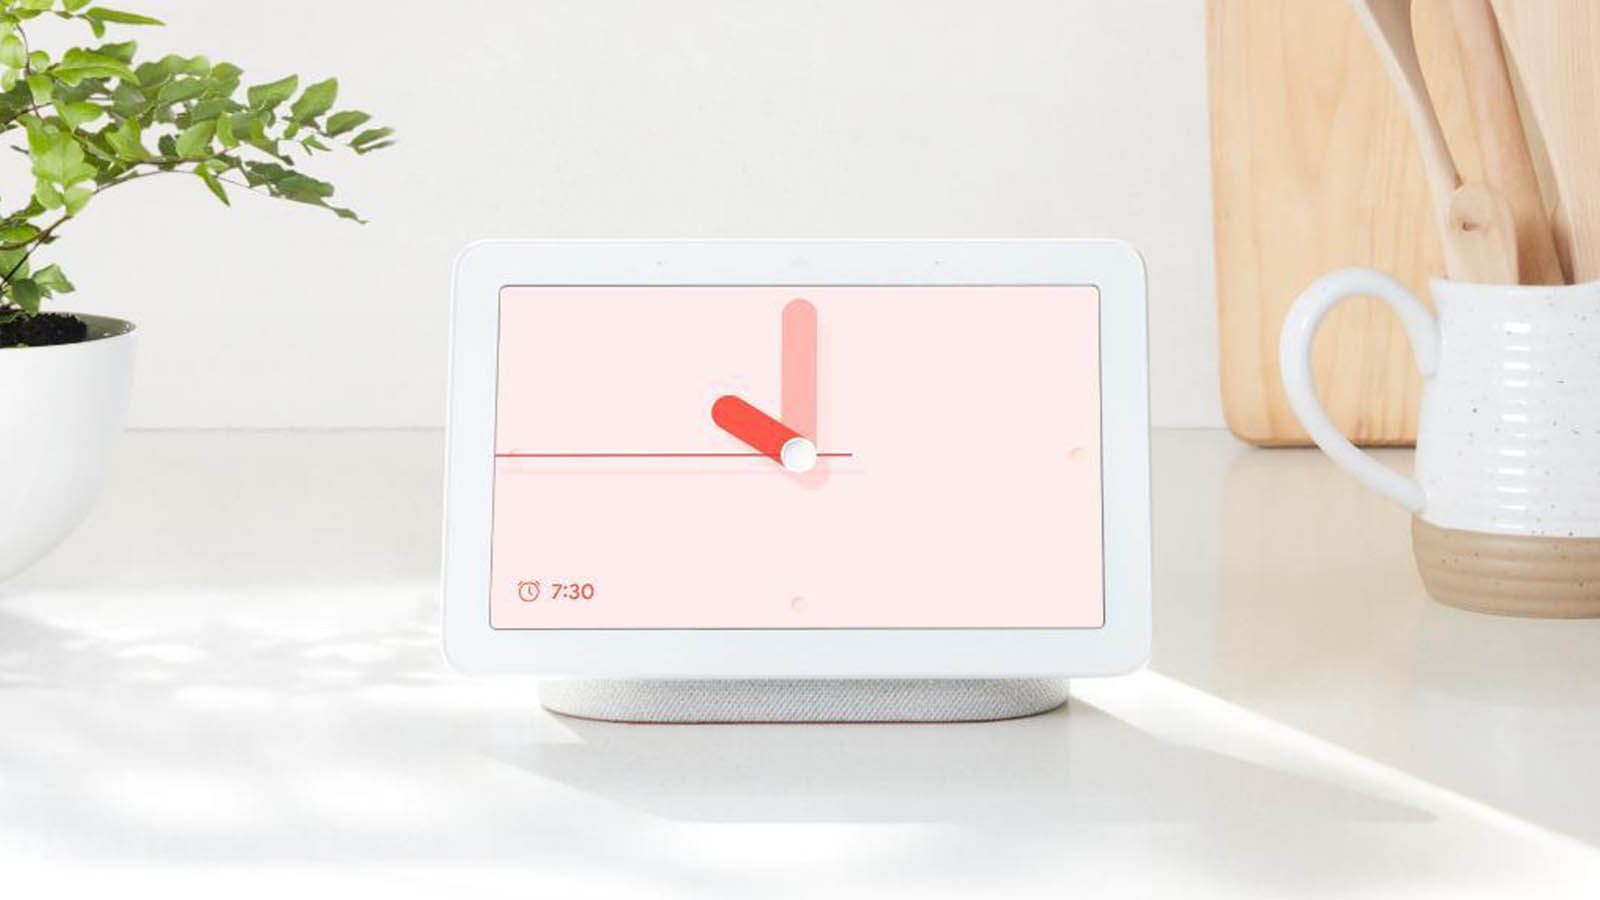 [U: Official] New clock face designs now available on Nest Hub devices